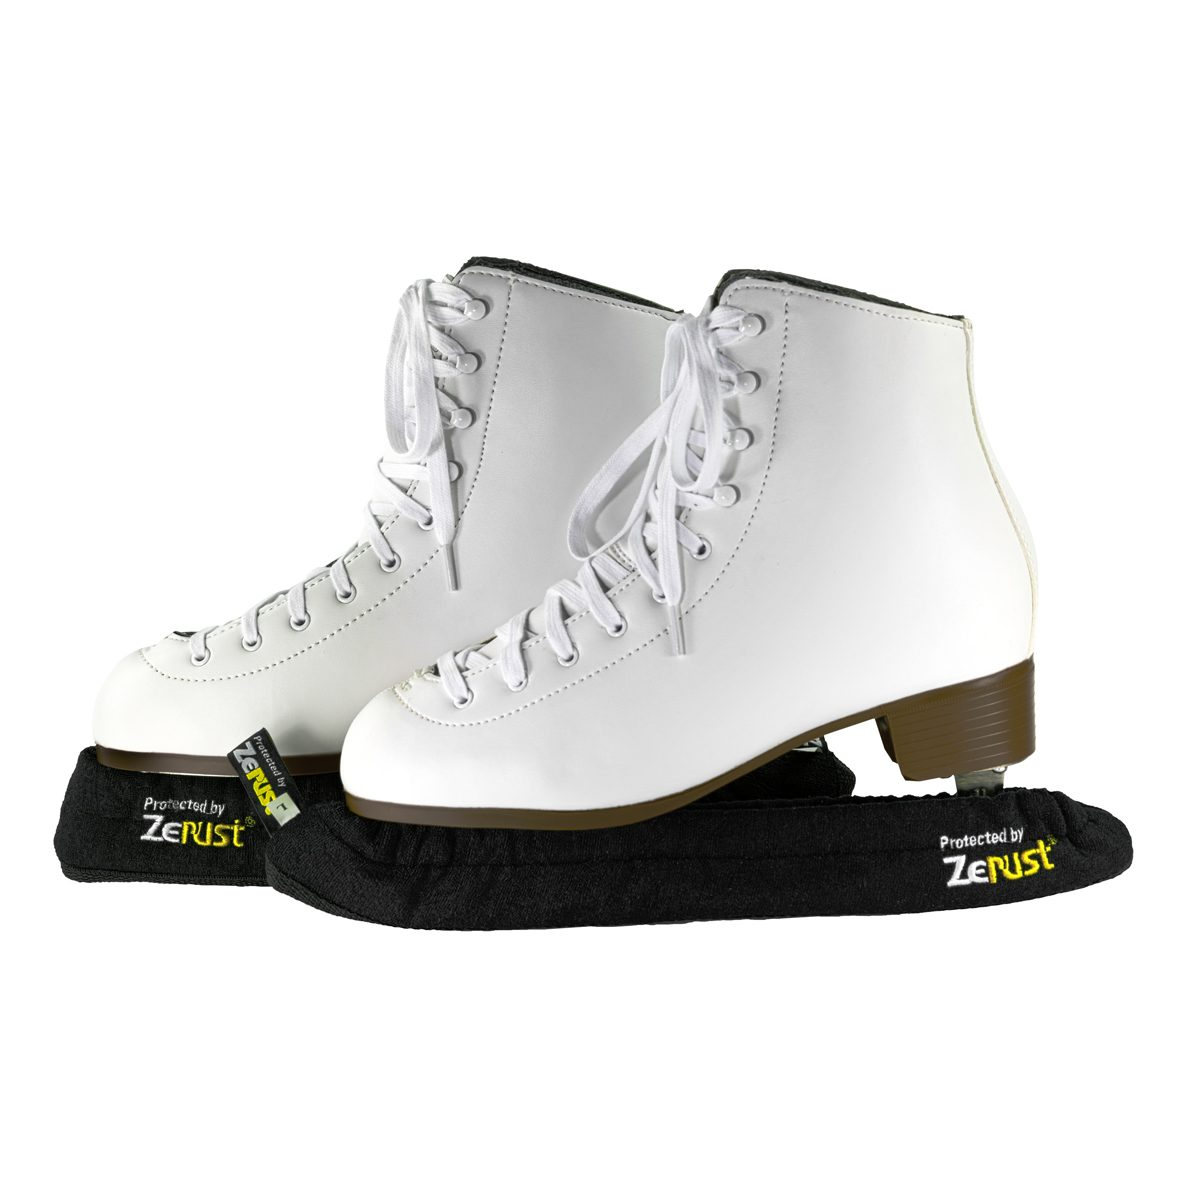 A pair of ice skates with blades covered by Zerust's skate covers.